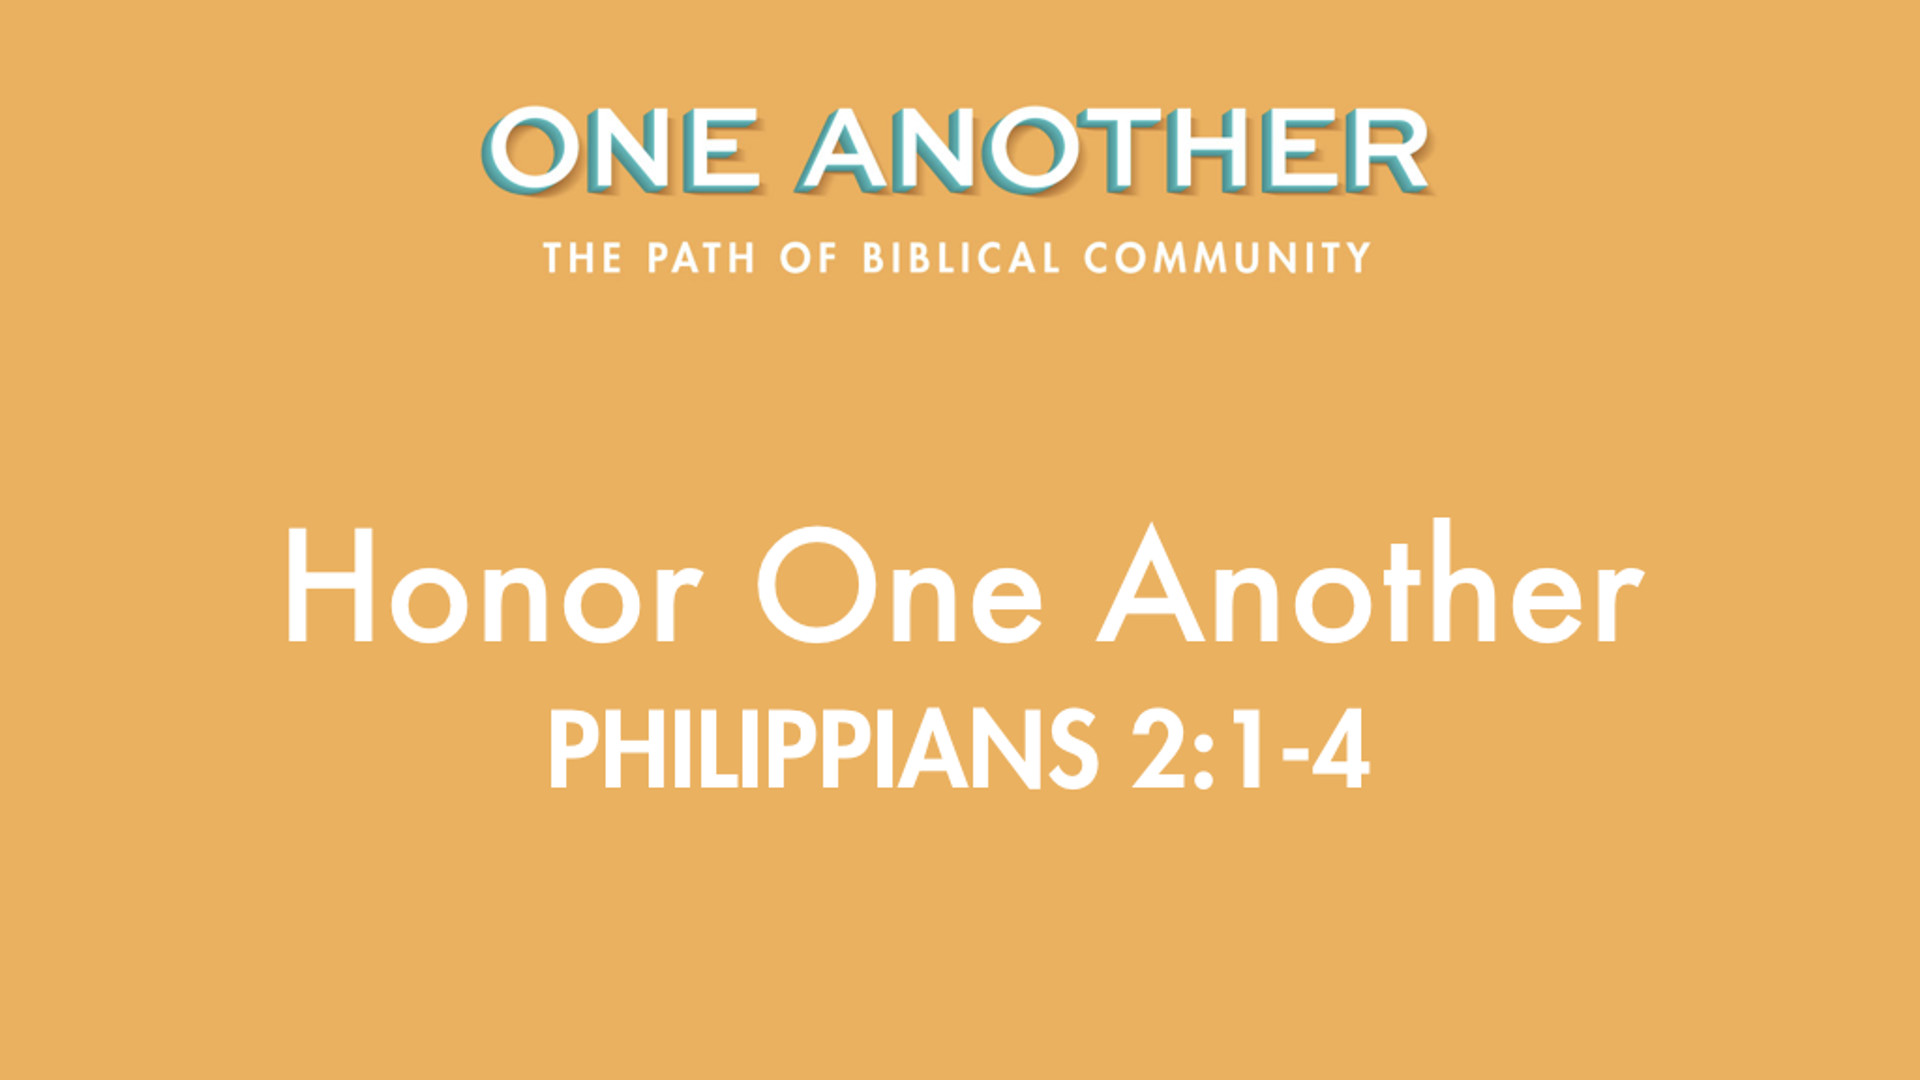 9Honor One Another - Philippians 2.1-4.jpg